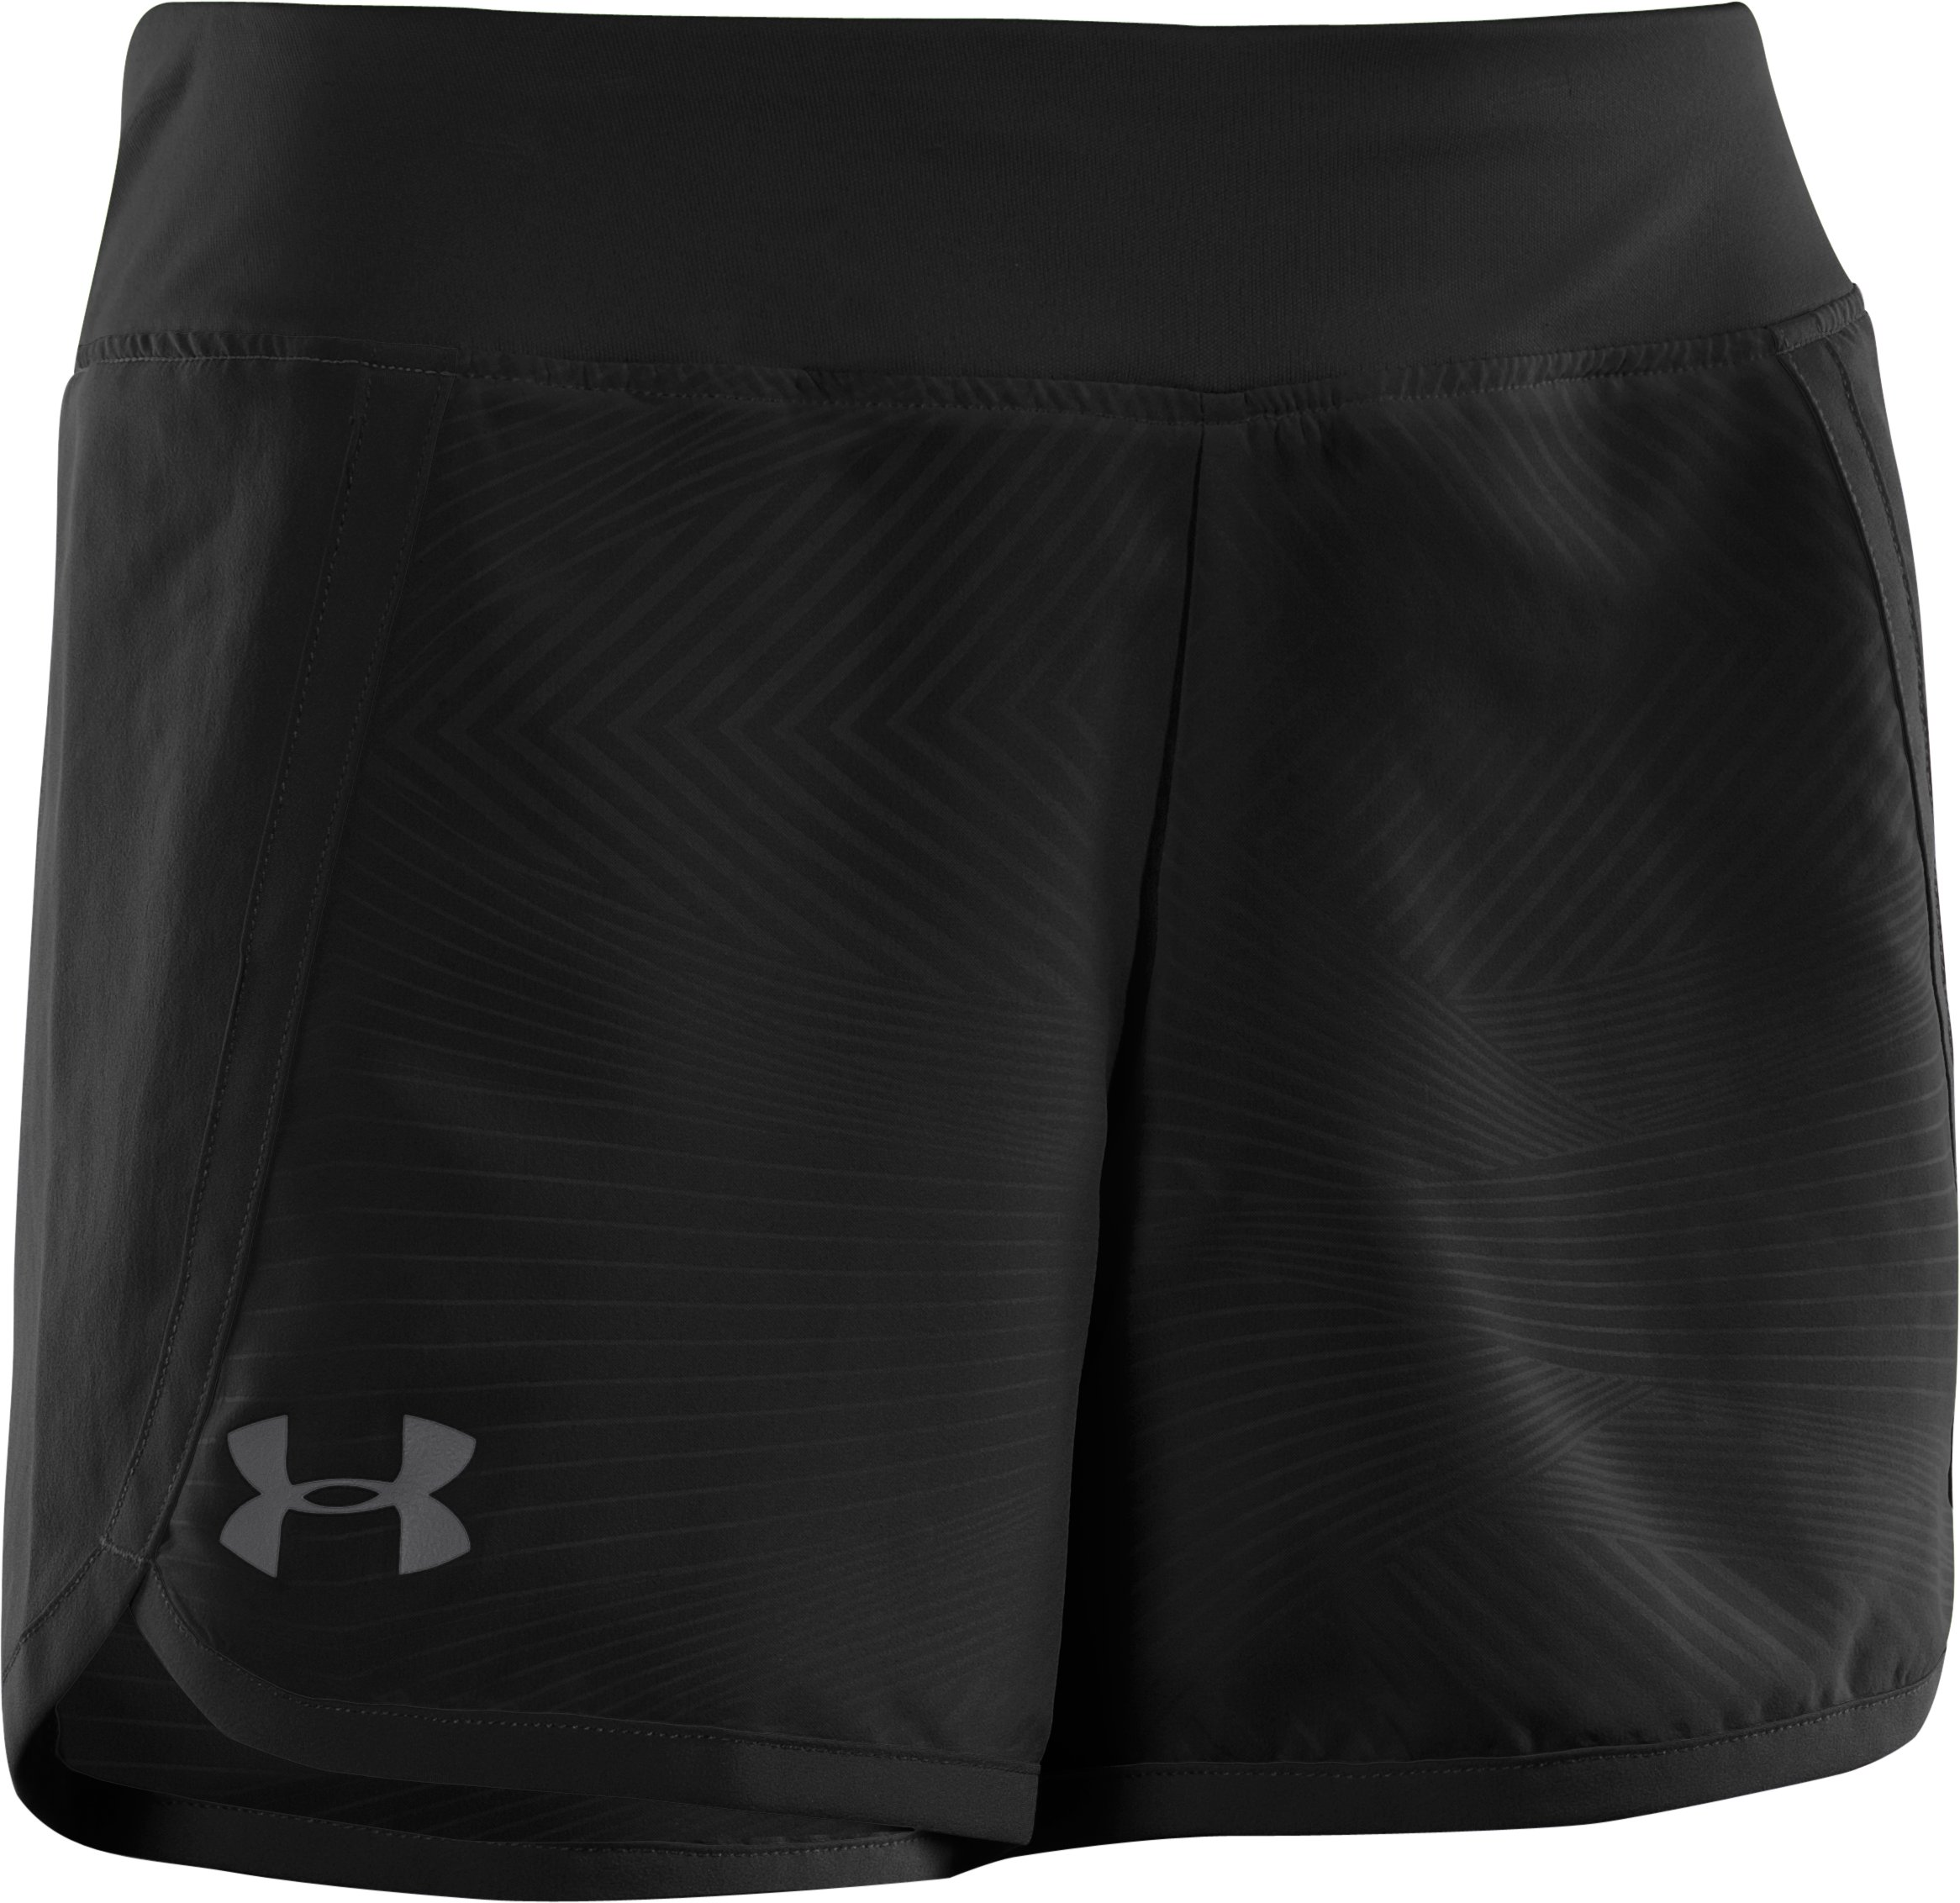 "Girls' UA Ripping 3"" Shorts, Black , zoomed image"